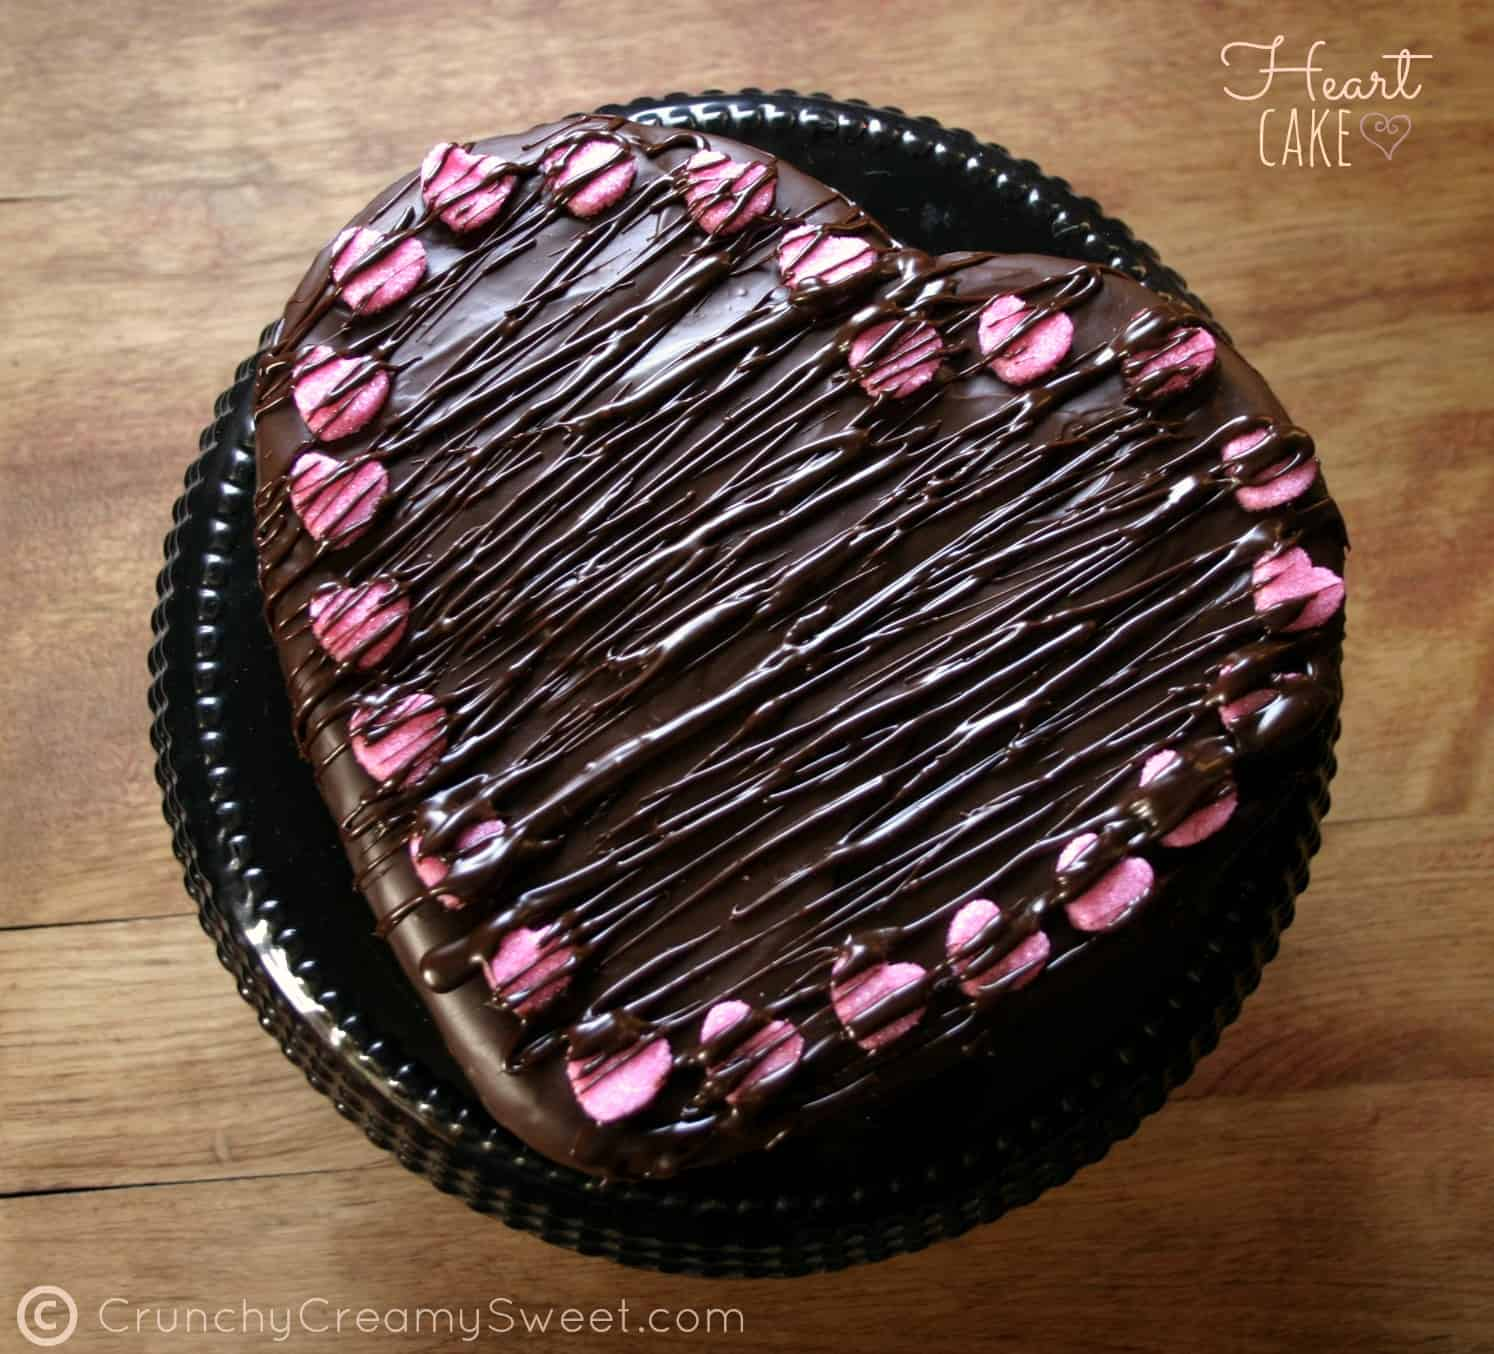 Heart Chocolate Cake Images : Chocolate Ganache Cake Recipe   Dishmaps